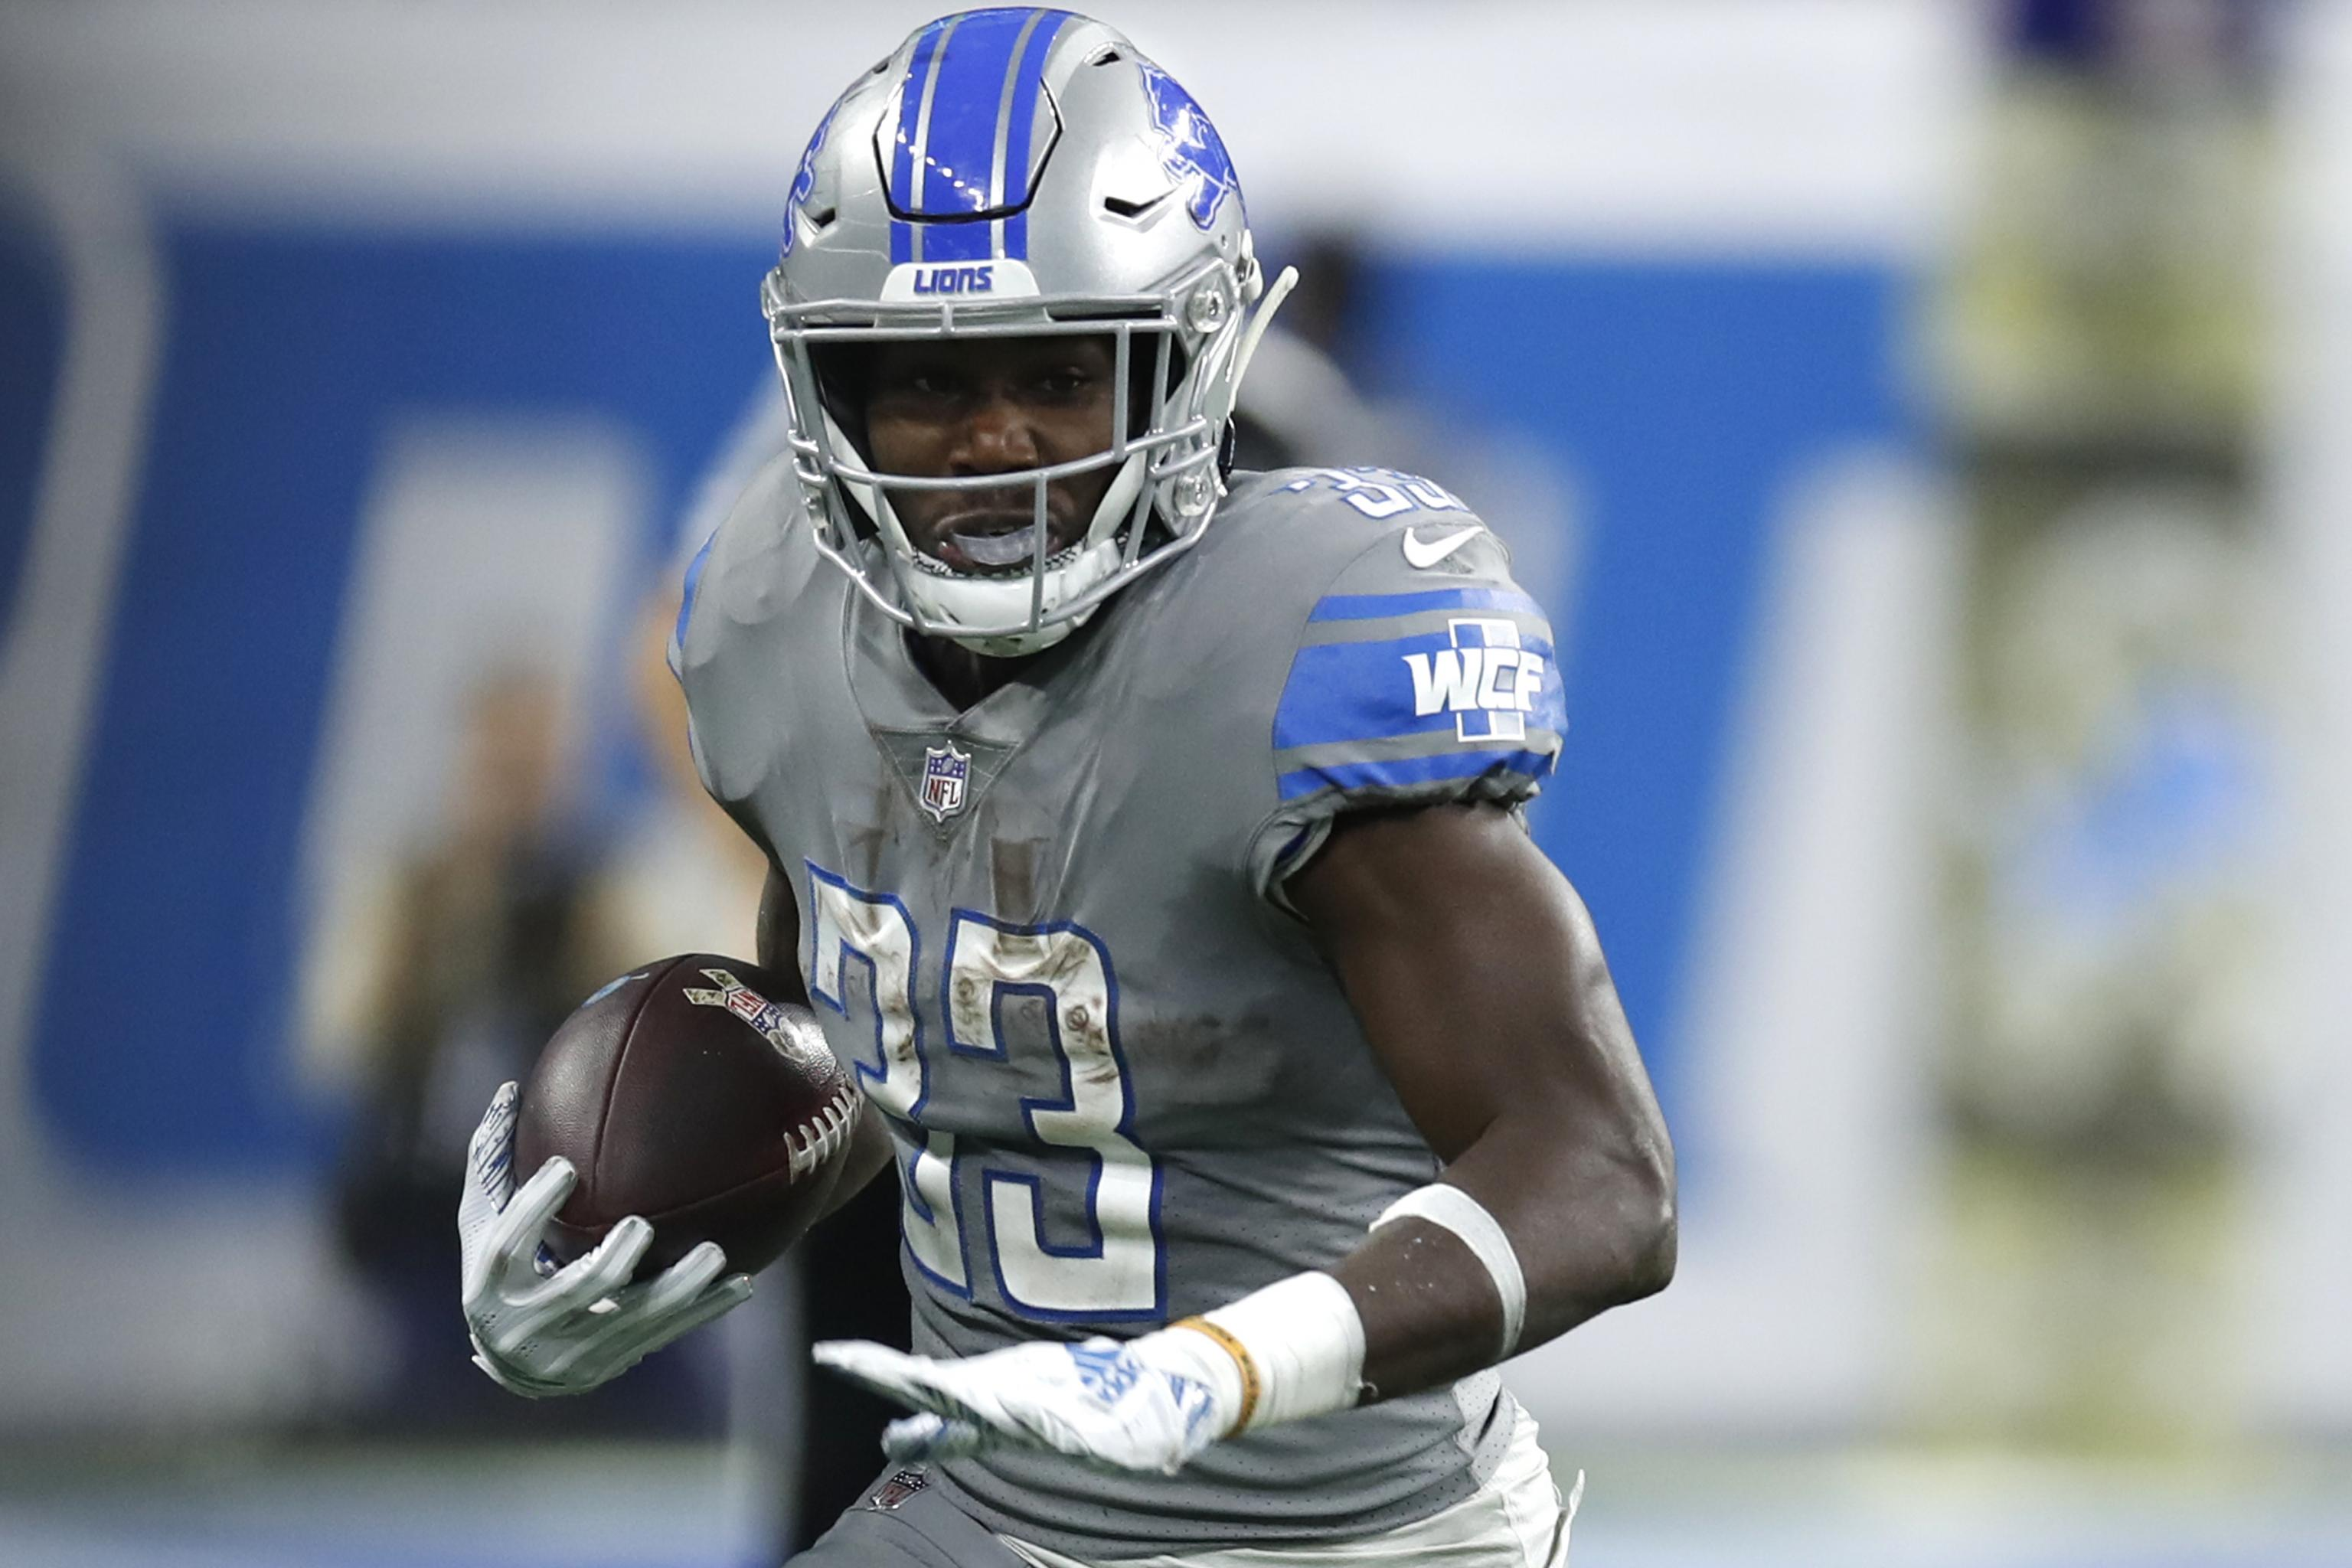 finest selection af78d 30d84 Lions Reportedly Place Kerryon Johnson on Injured Reserve ...